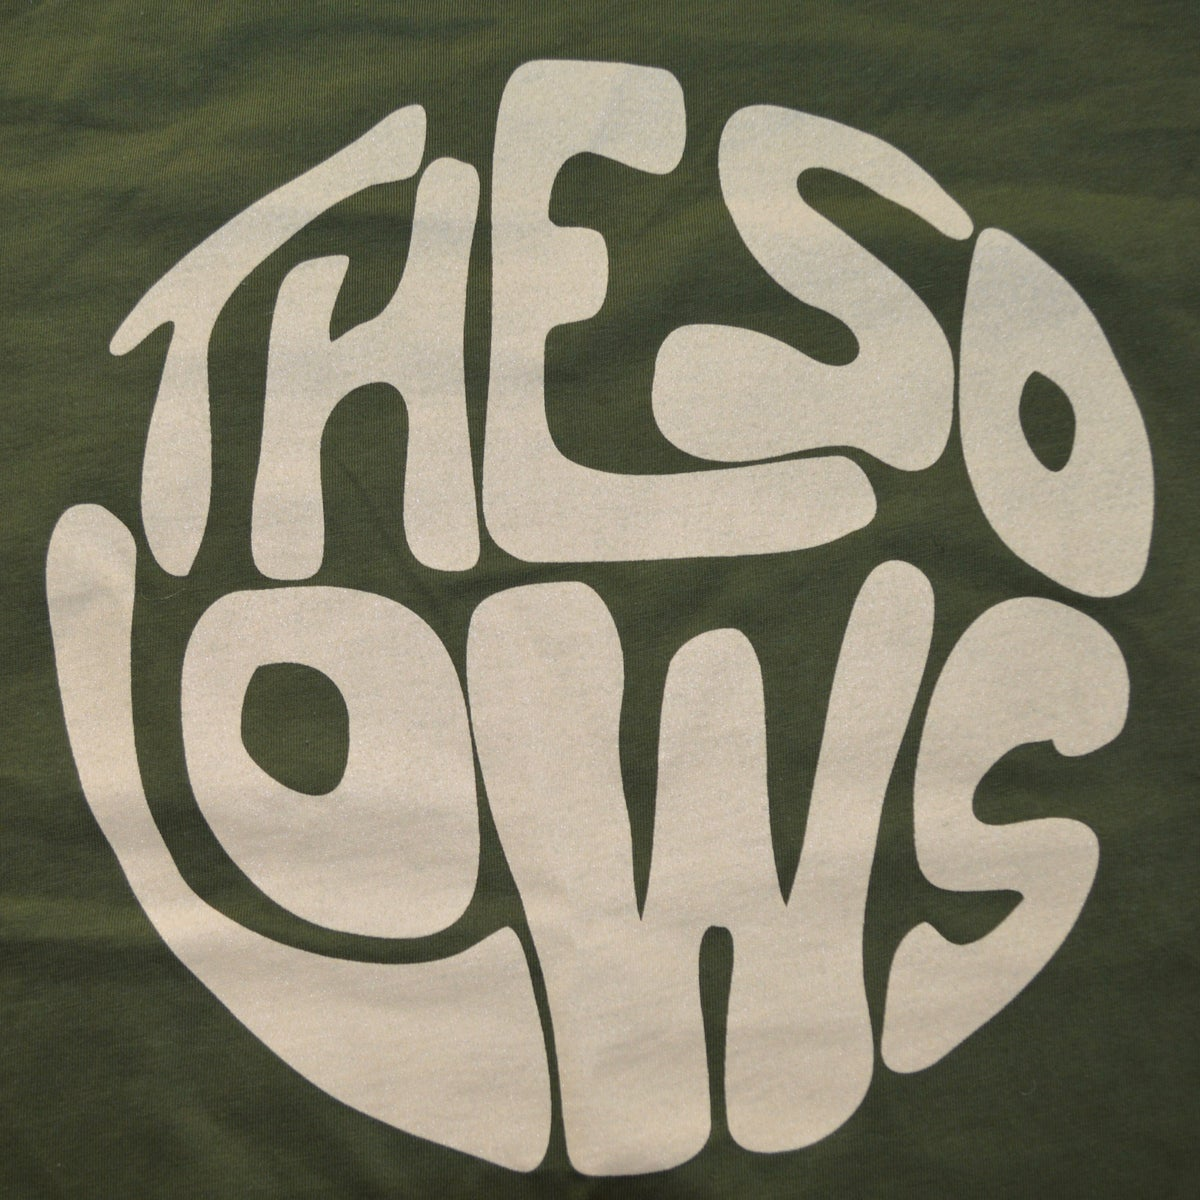 The So Lows High Vibrations T-Shirt (Olive Green)